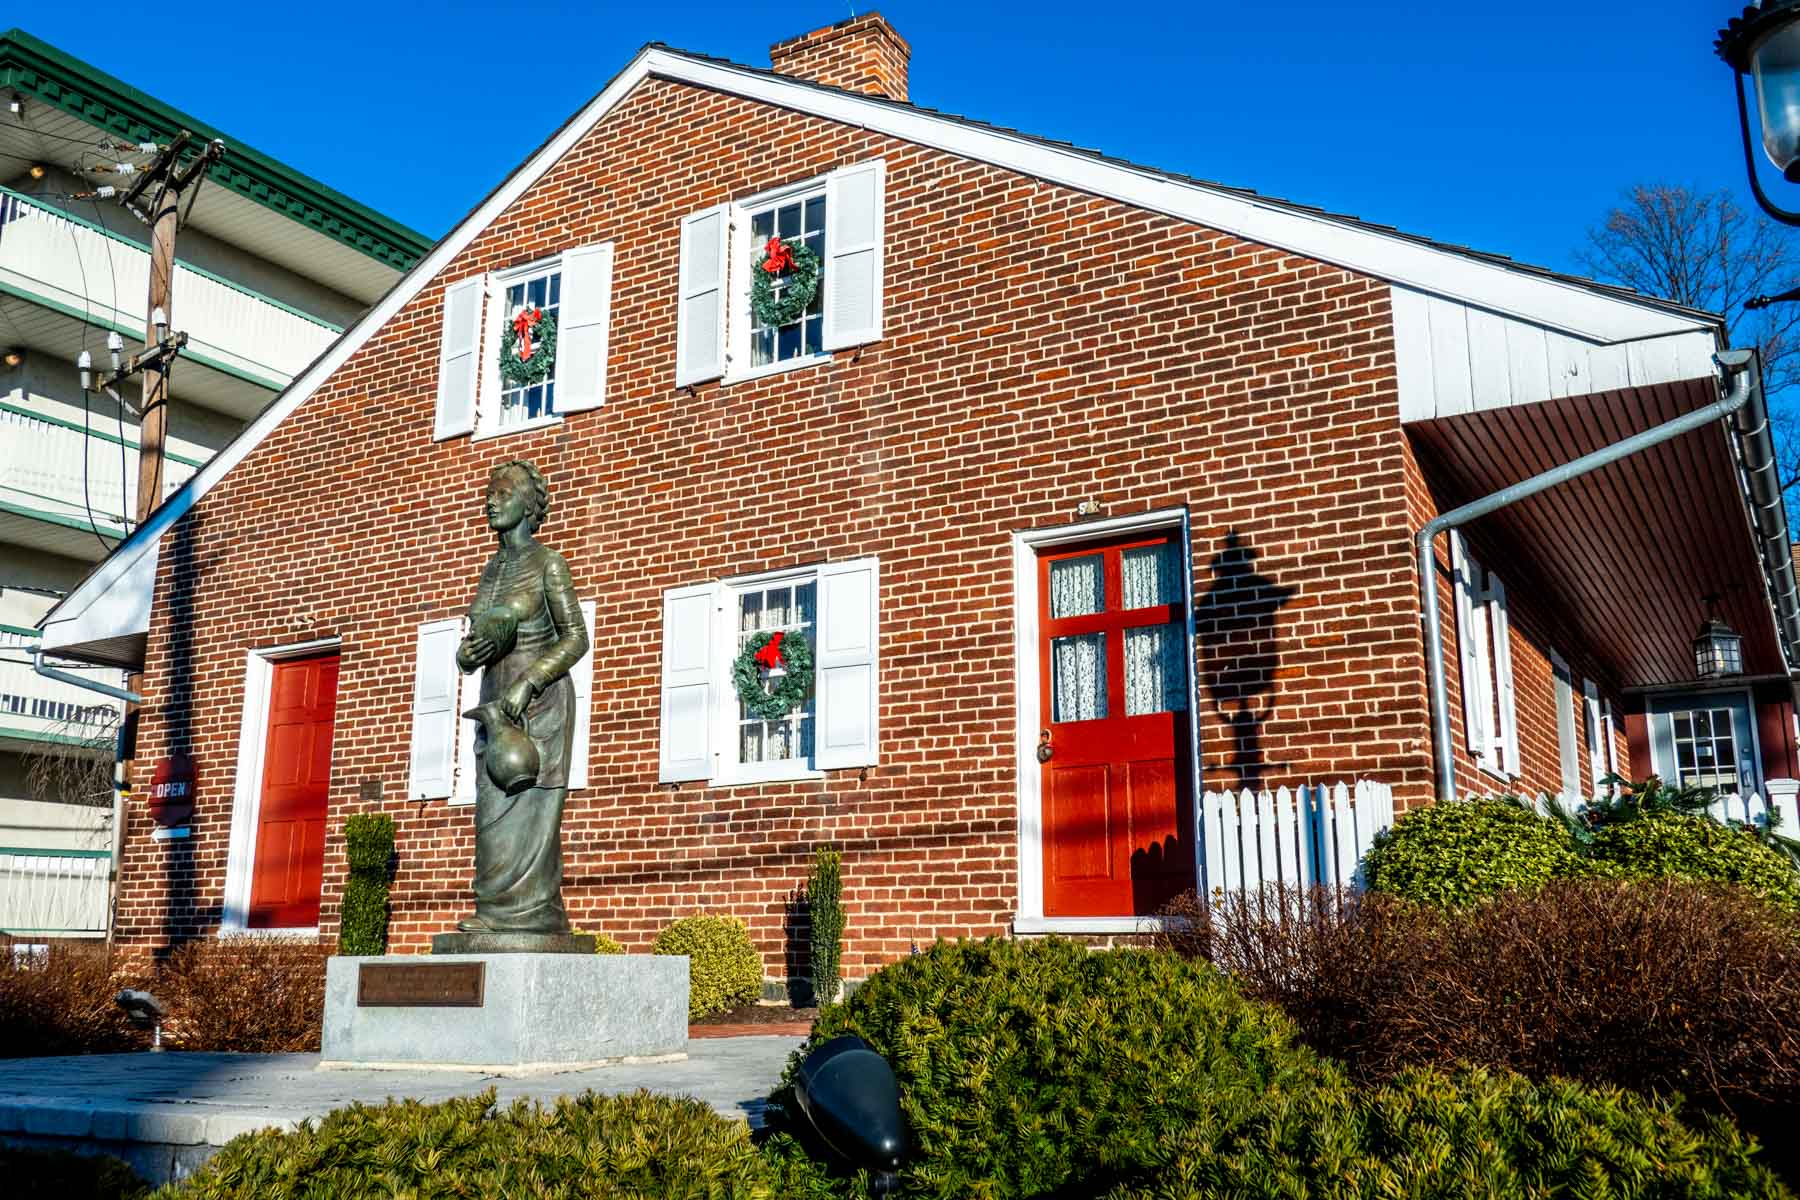 Red brick house with a statue of a woman in front--Jennie Wade, the only civilan killed during the Battle of Gettysburg